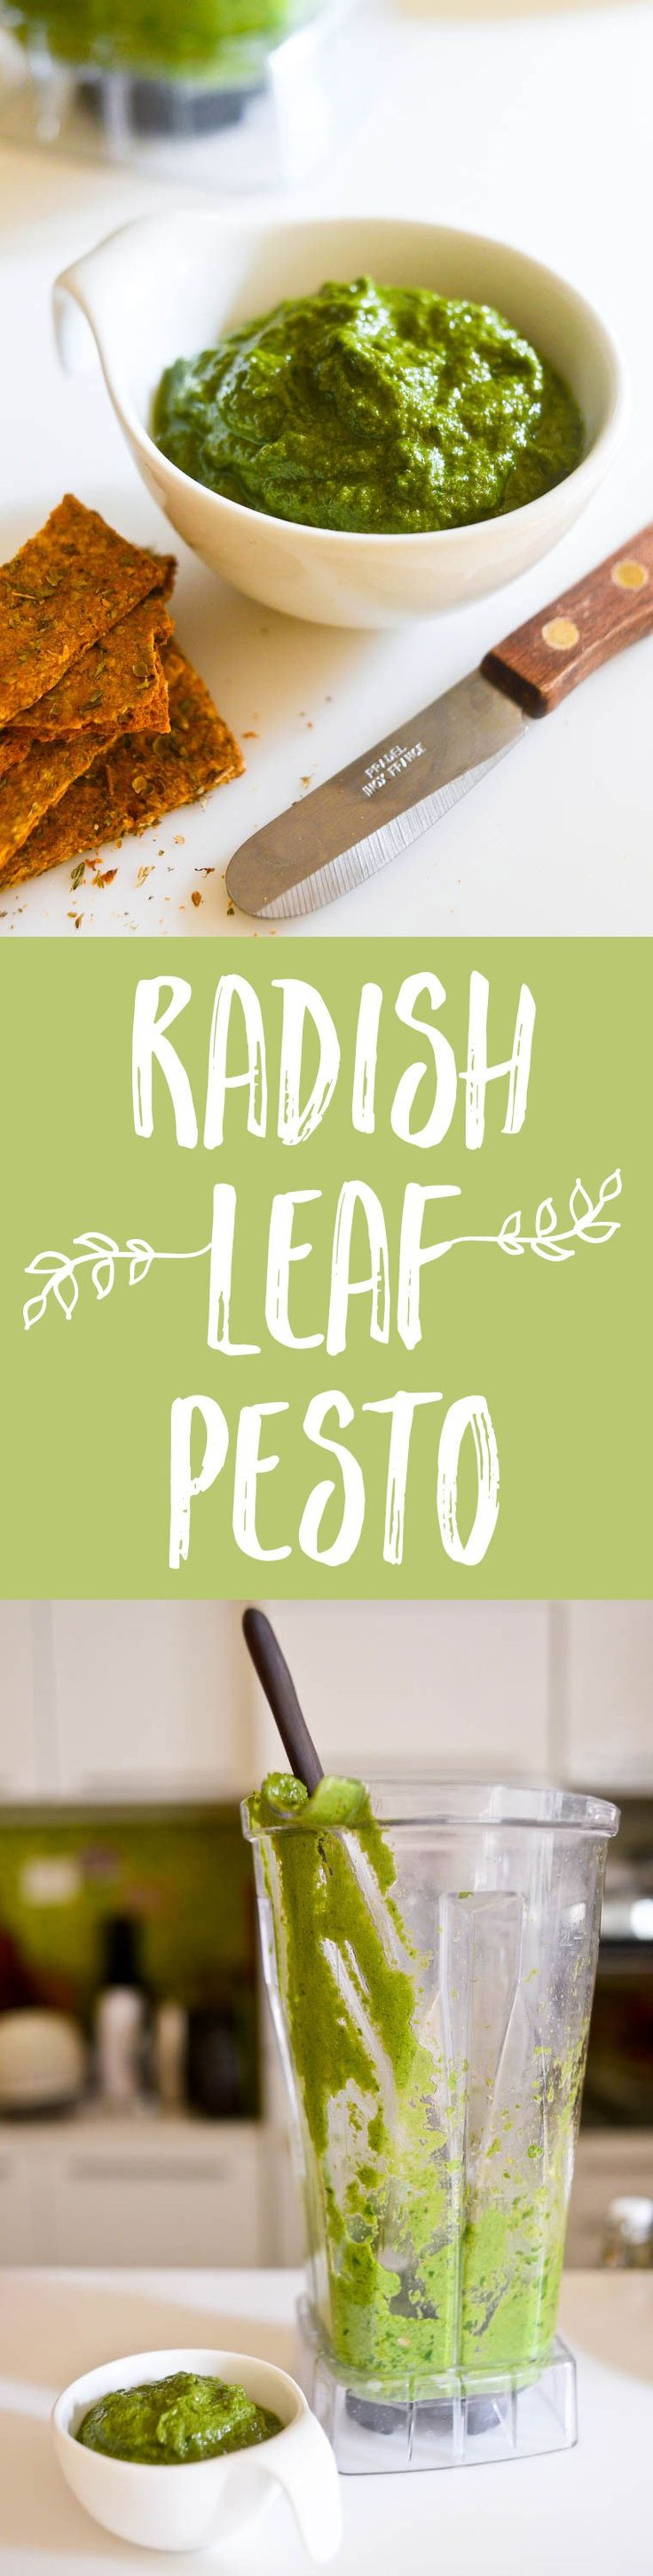 Don't throw out your radish leaves! Turn them into a delicious radish leaf pesto to use in pasta, vegetable tarts, crostini, or with meat and fish.